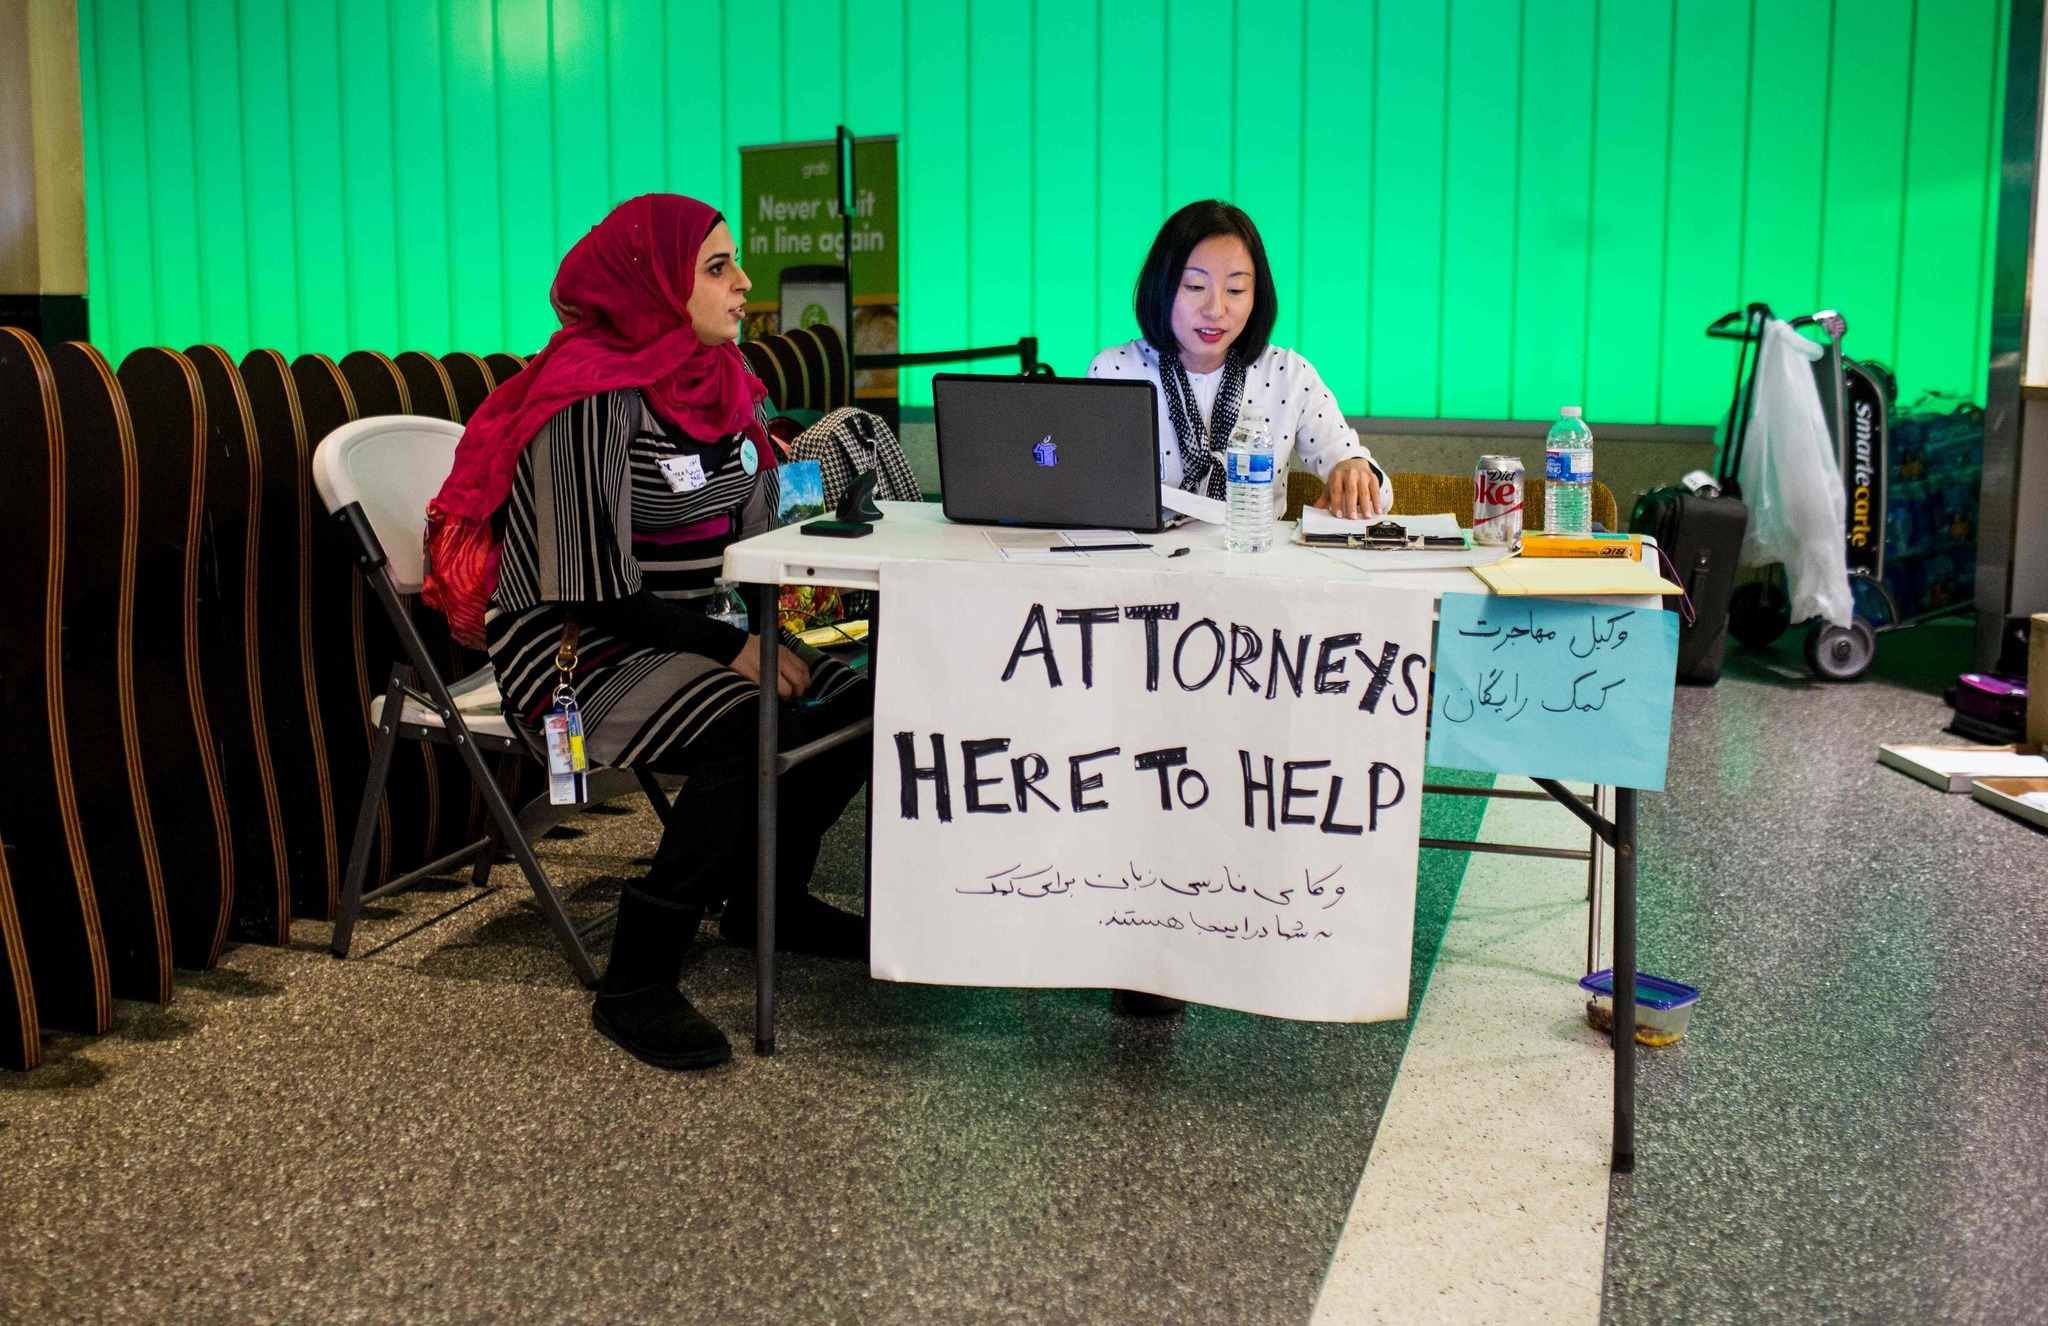 Volunteer attorneys sit in the arrivals area at LAX during a protest of the first travel ban executive order. (Kyle Grillot / AFP/Getty Images)